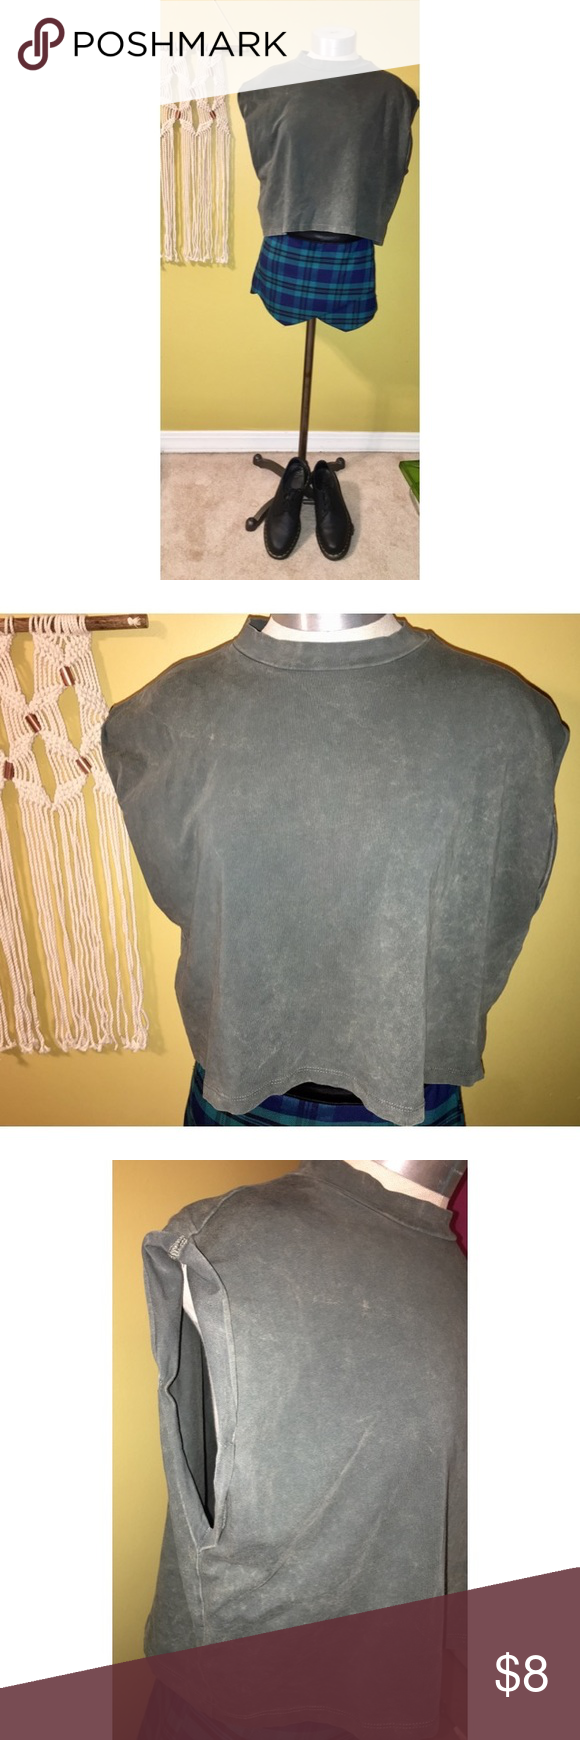 H&M acid wash crop top Green acid wash crop top by Divided from H&M in size medium. Has cap sleeves that are rolled up. In like new condition! Make an offer or add to a bundle! 💞 H&M Tops Crop Tops